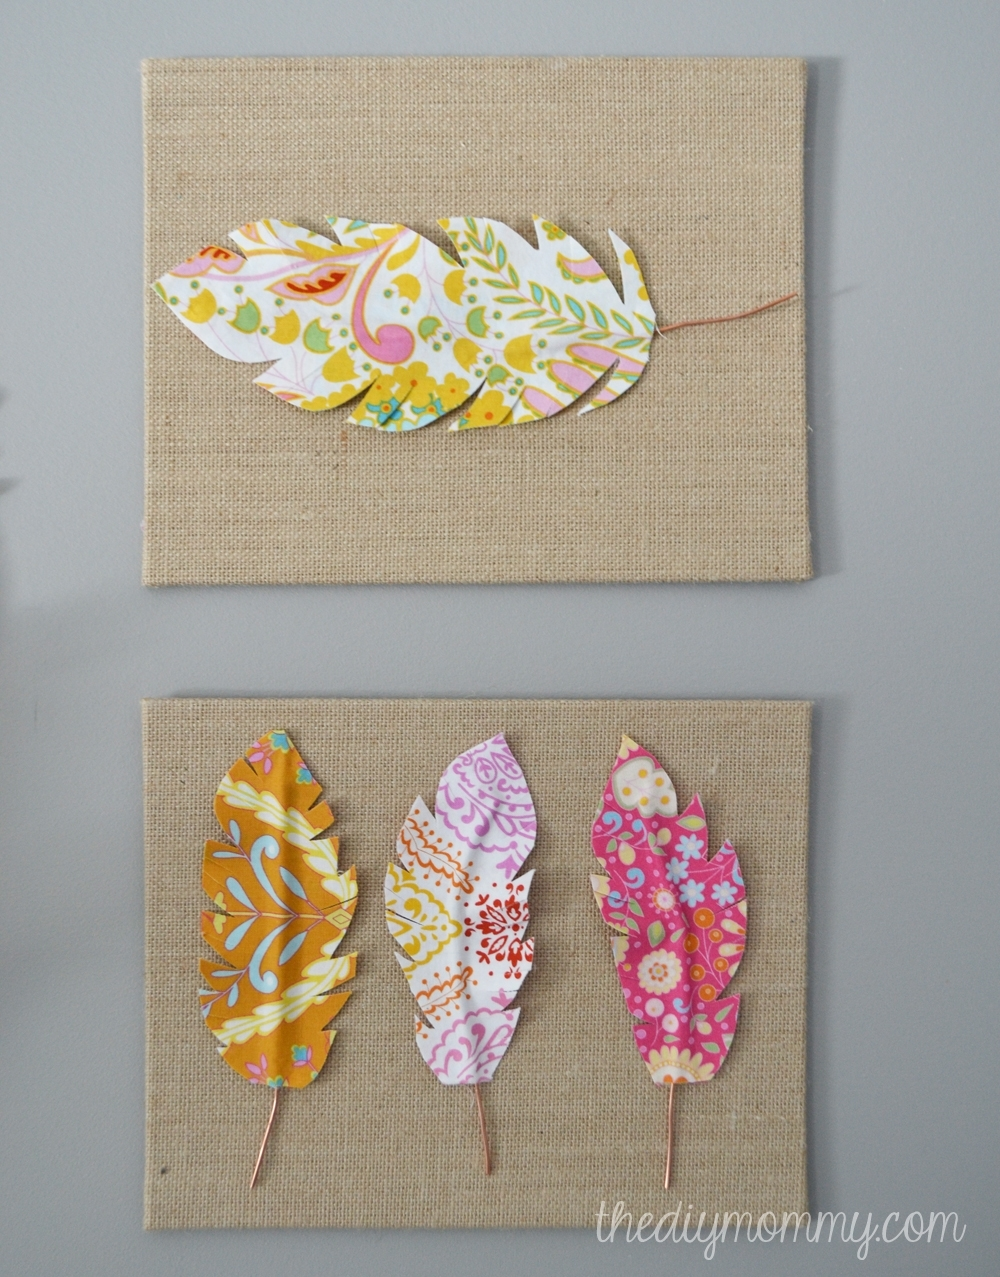 Make Fabric Feather Wall Art | The Diy Mommy In Most Current Fabric For Canvas Wall Art (View 5 of 15)